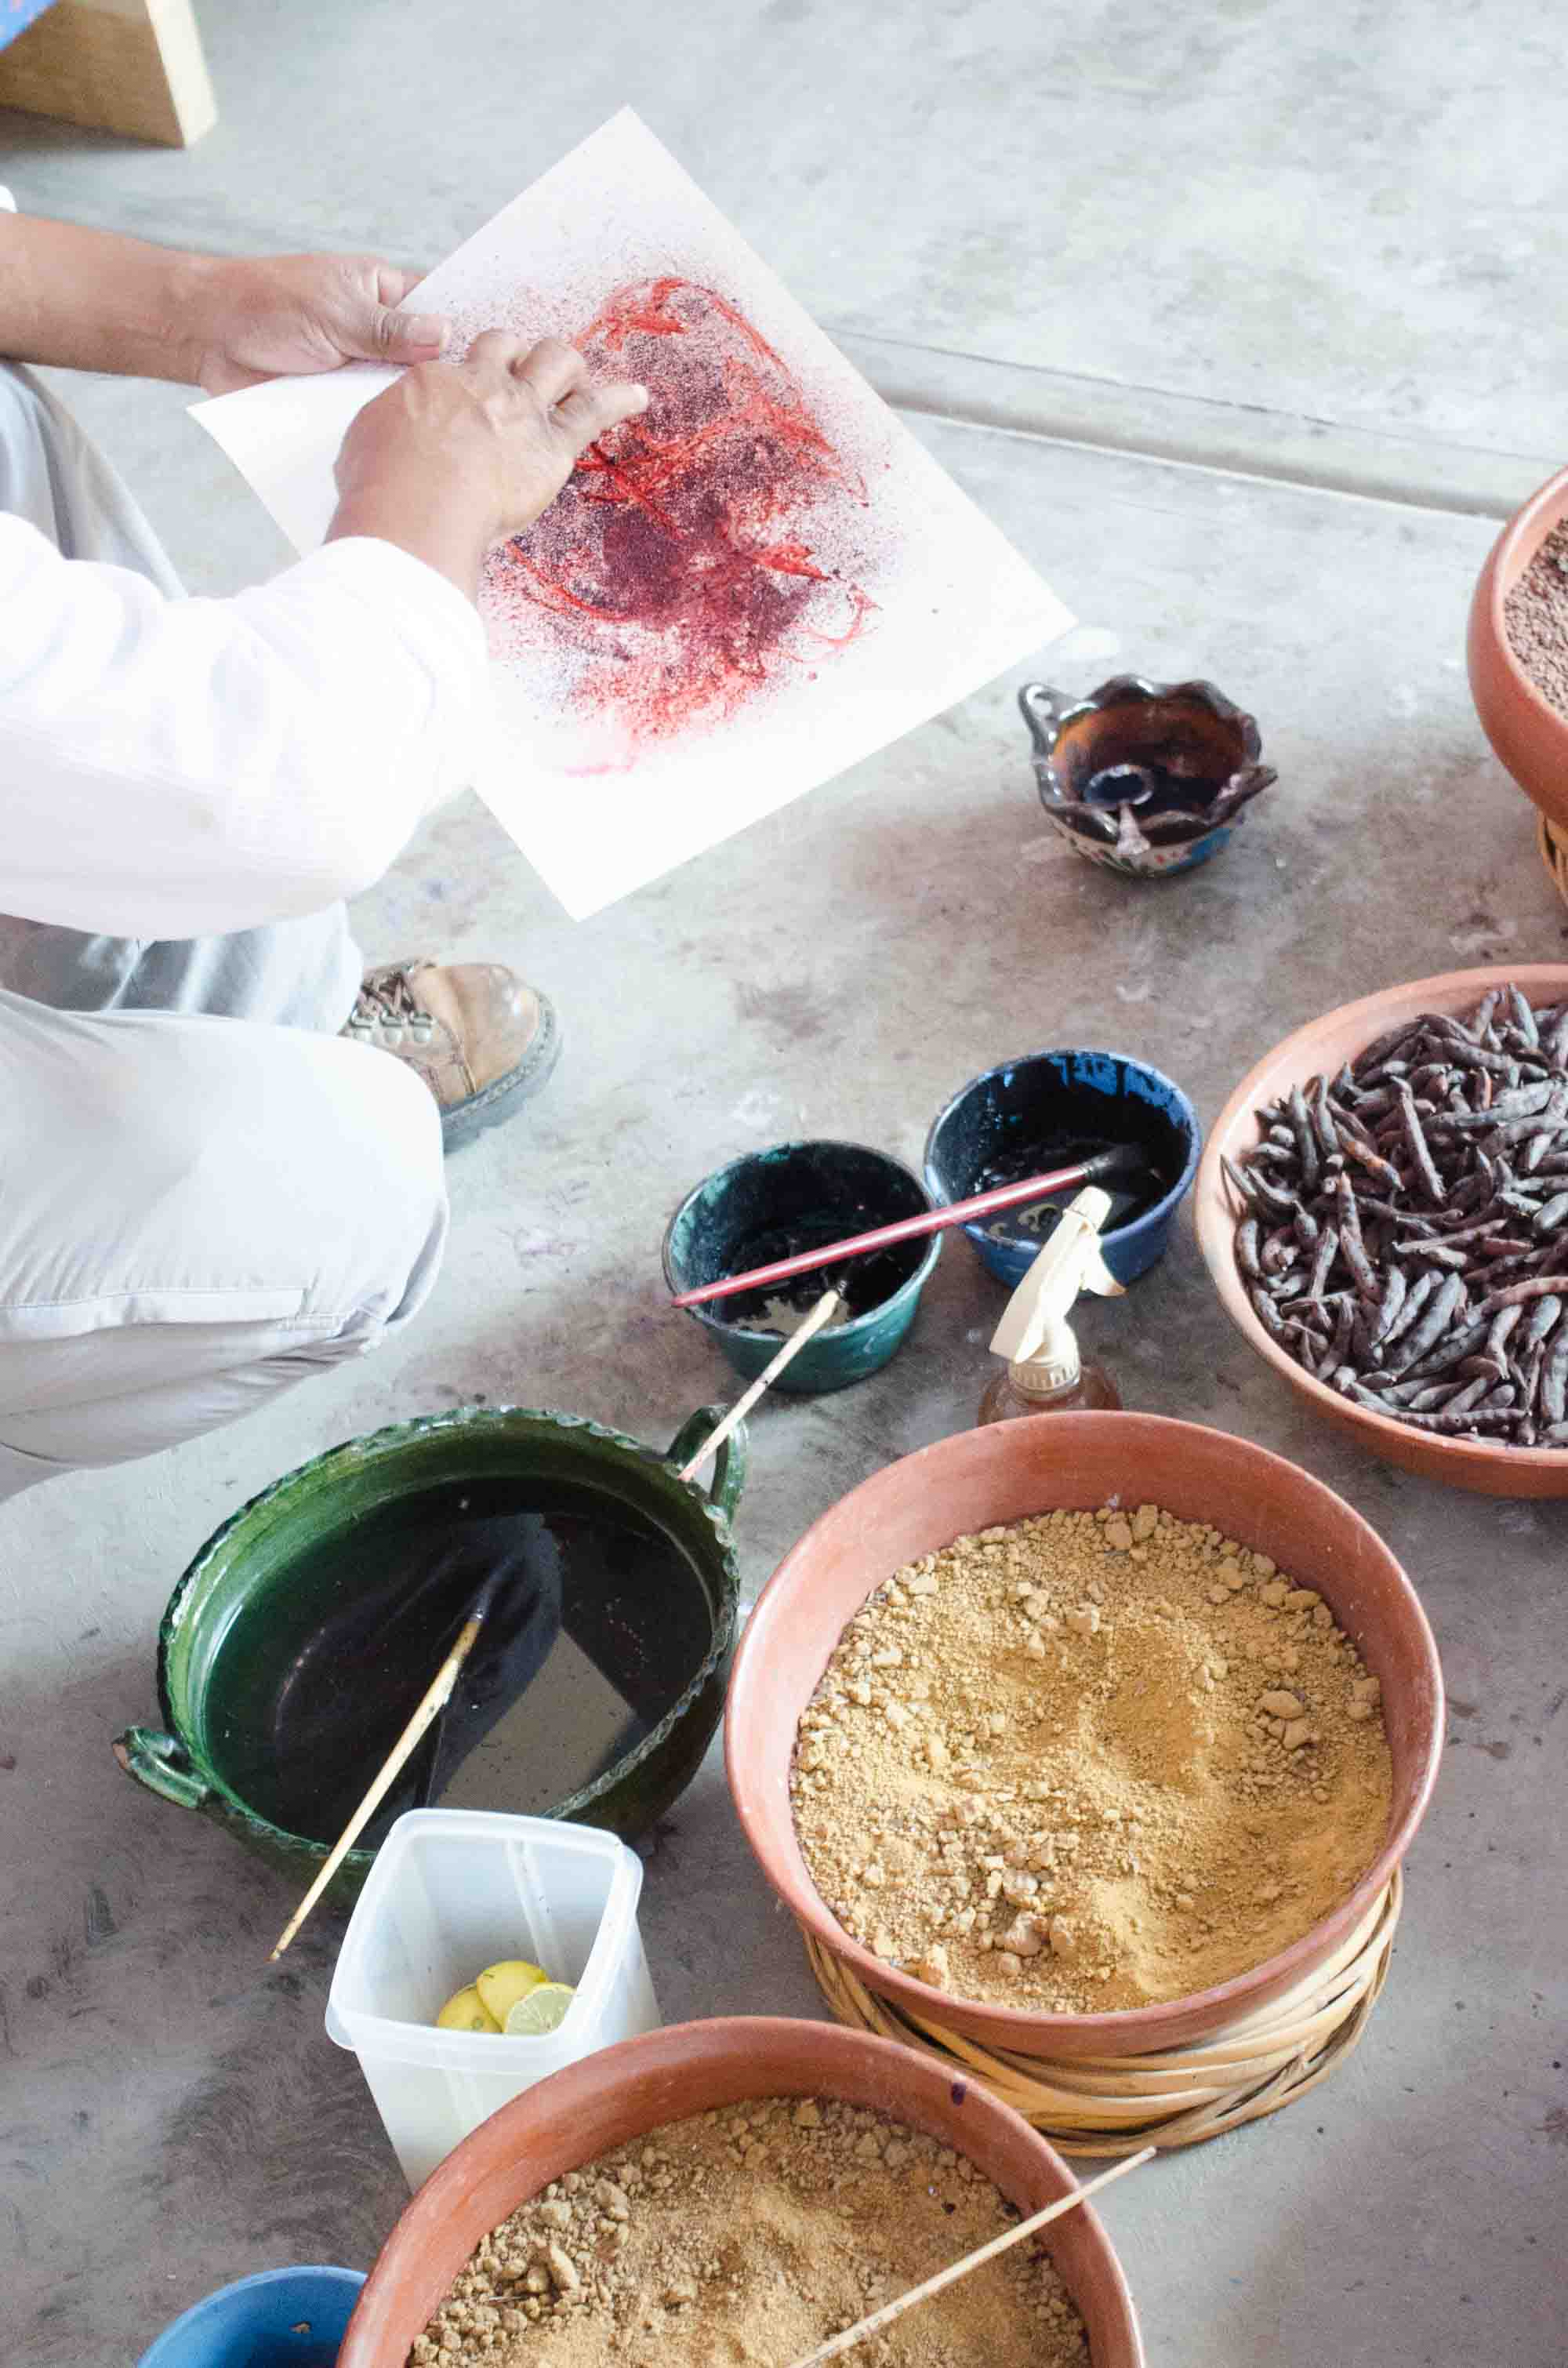 Natural plant dyes in Oaxaca, Mexico